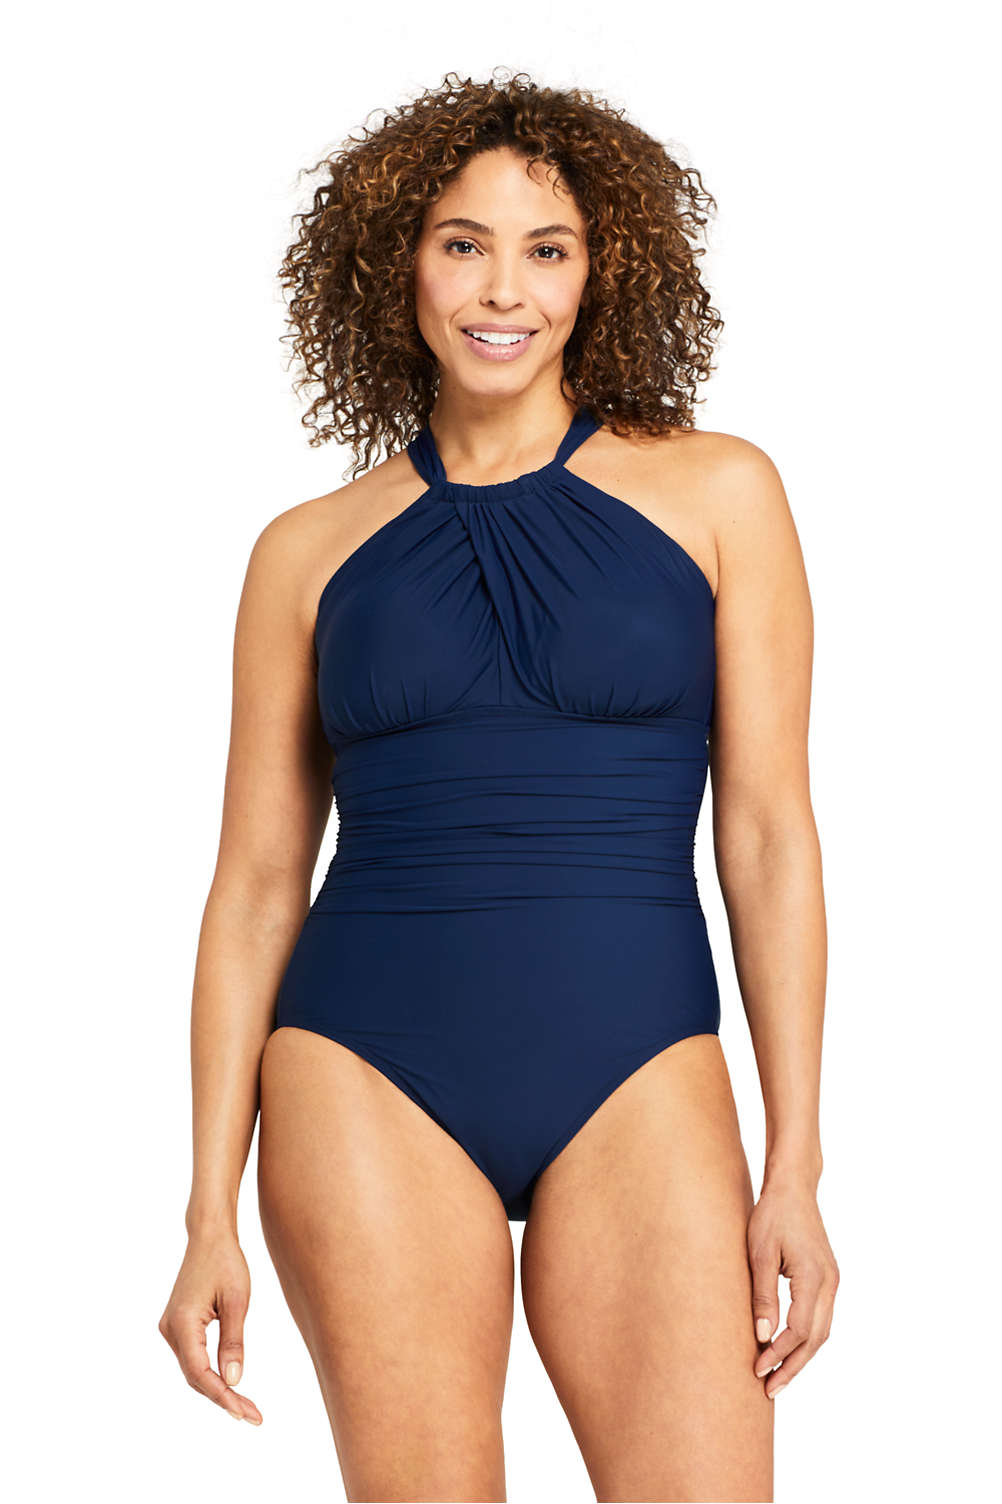 3a0d2a7dcb0 Women's Slender Keyhole High-neck One Piece Swimsuit with Tummy Control  from Lands' End